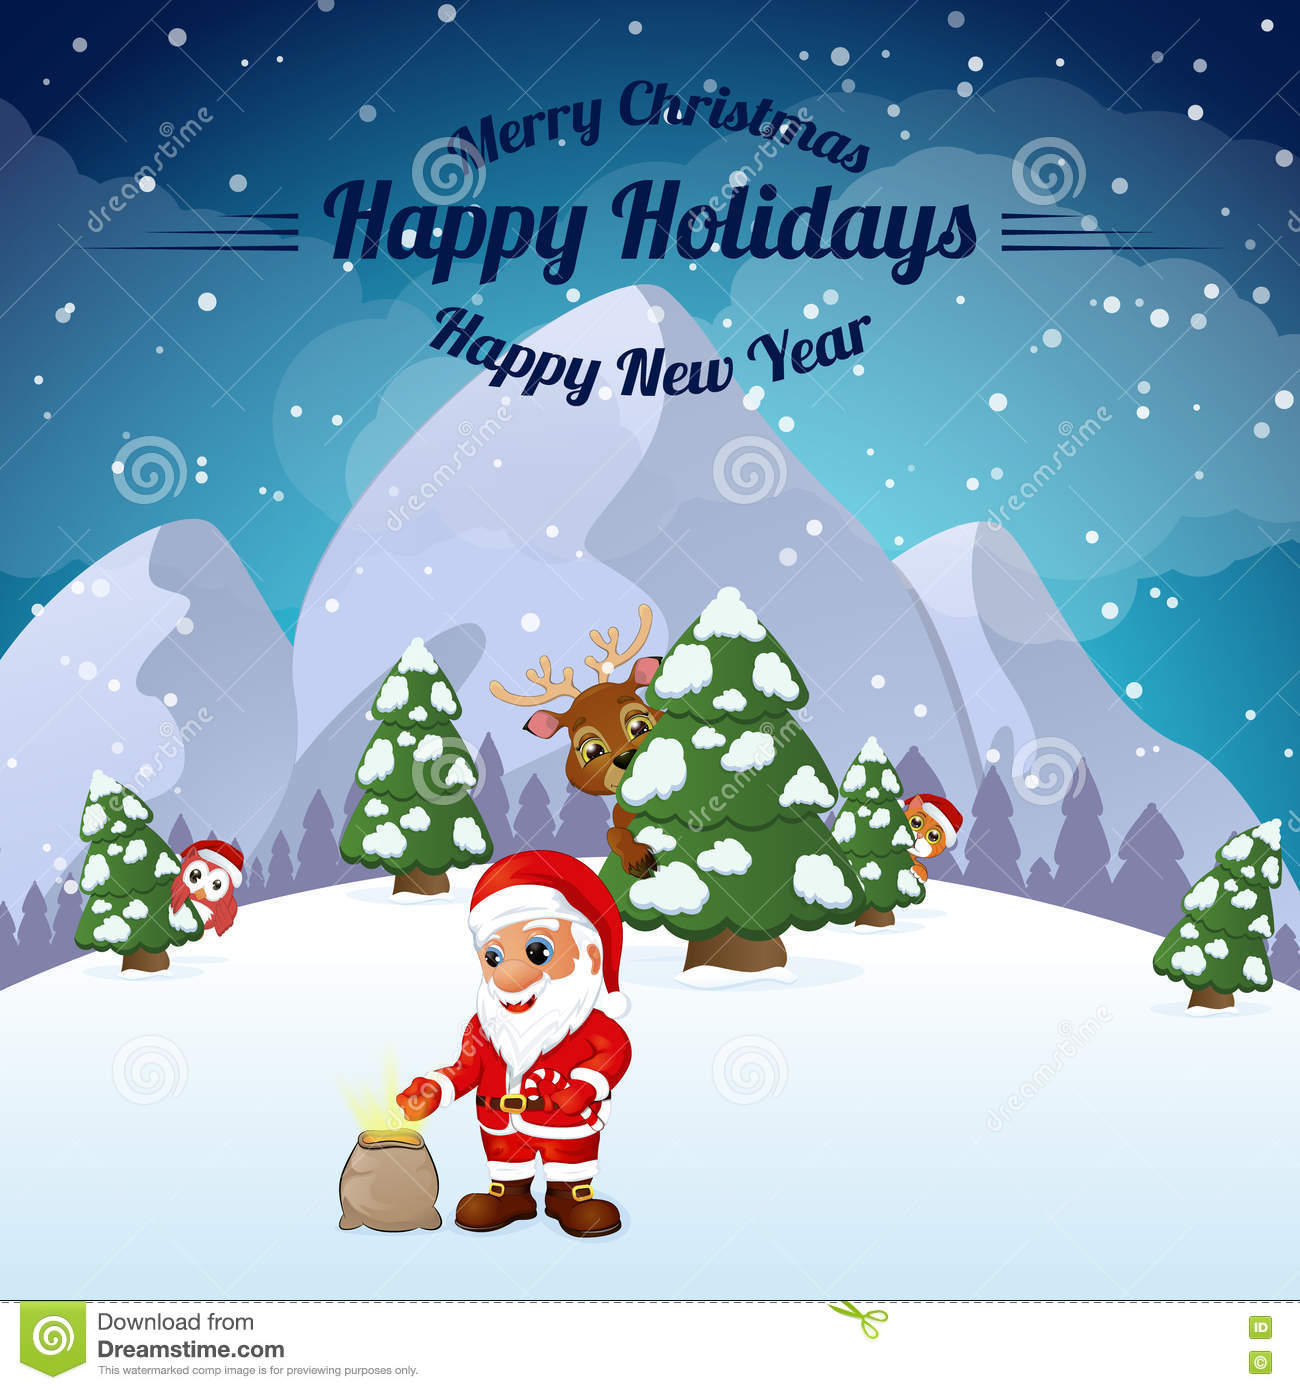 Greeting cards happy new year and merry christmas stock vector greeting cards happy new year and merry christmas m4hsunfo